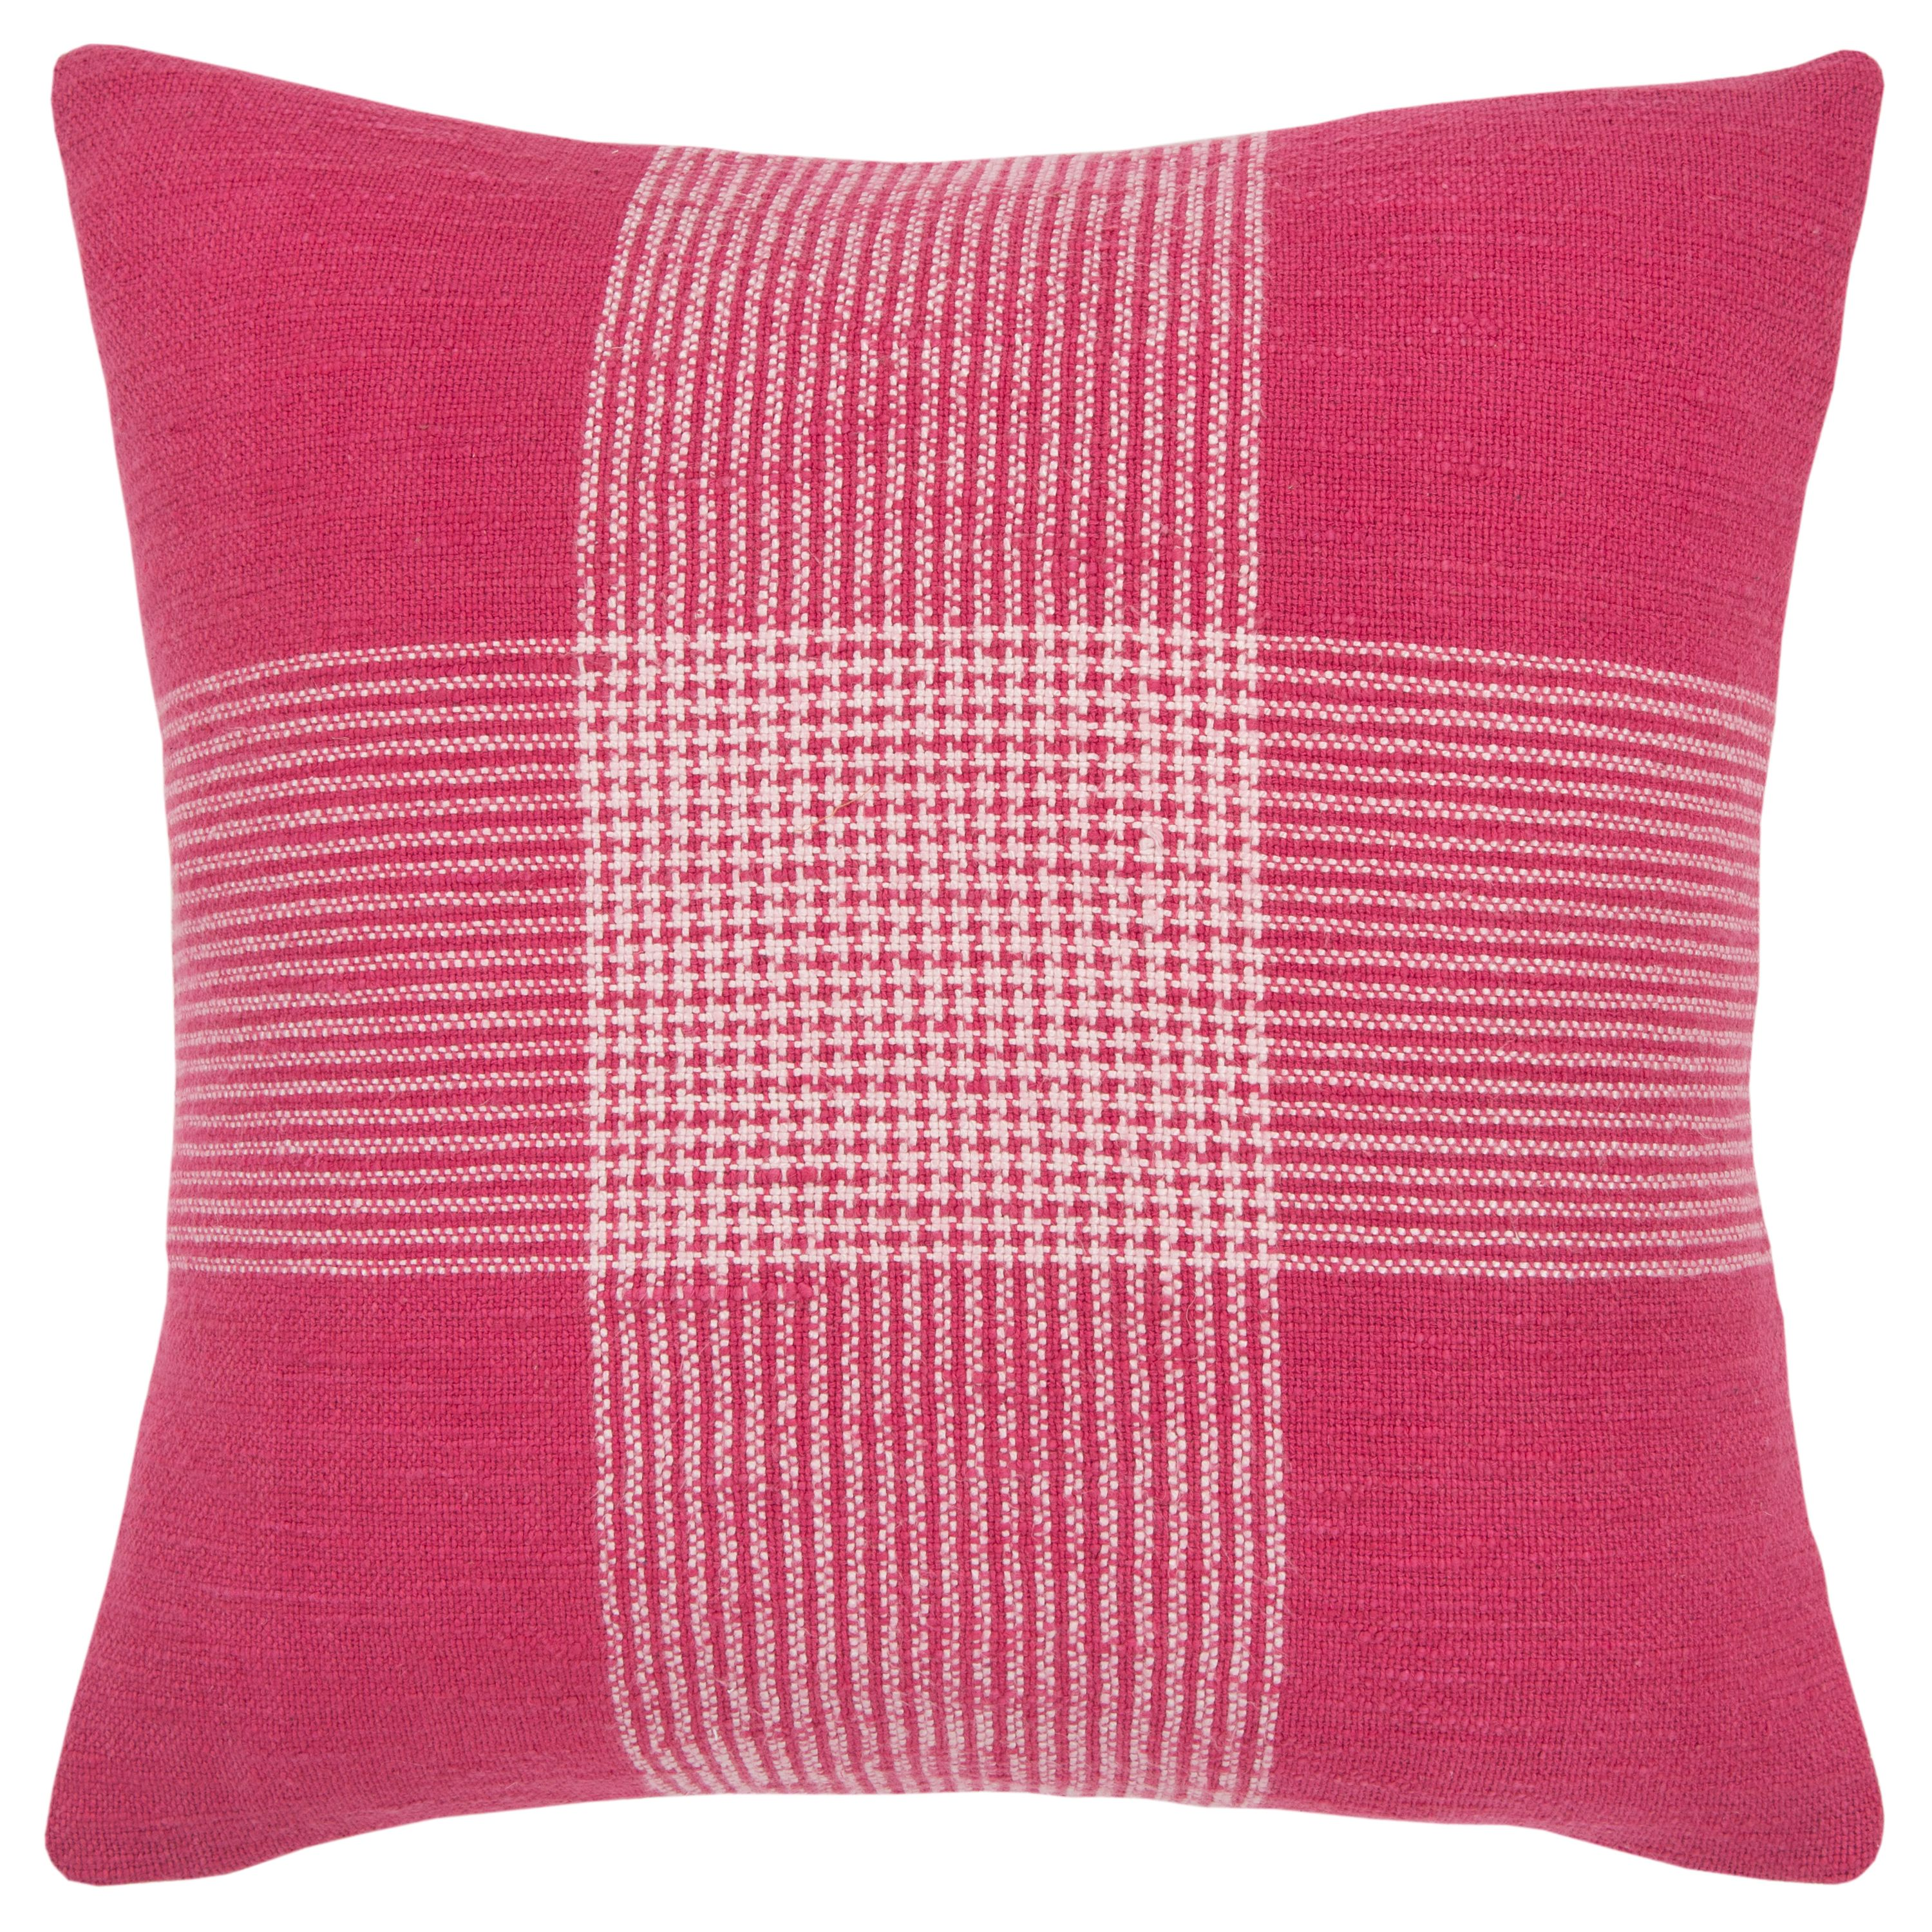 "Rizzy Home Decorative Down Filled Throw Pillow Plaid 20""X20"" Pink"